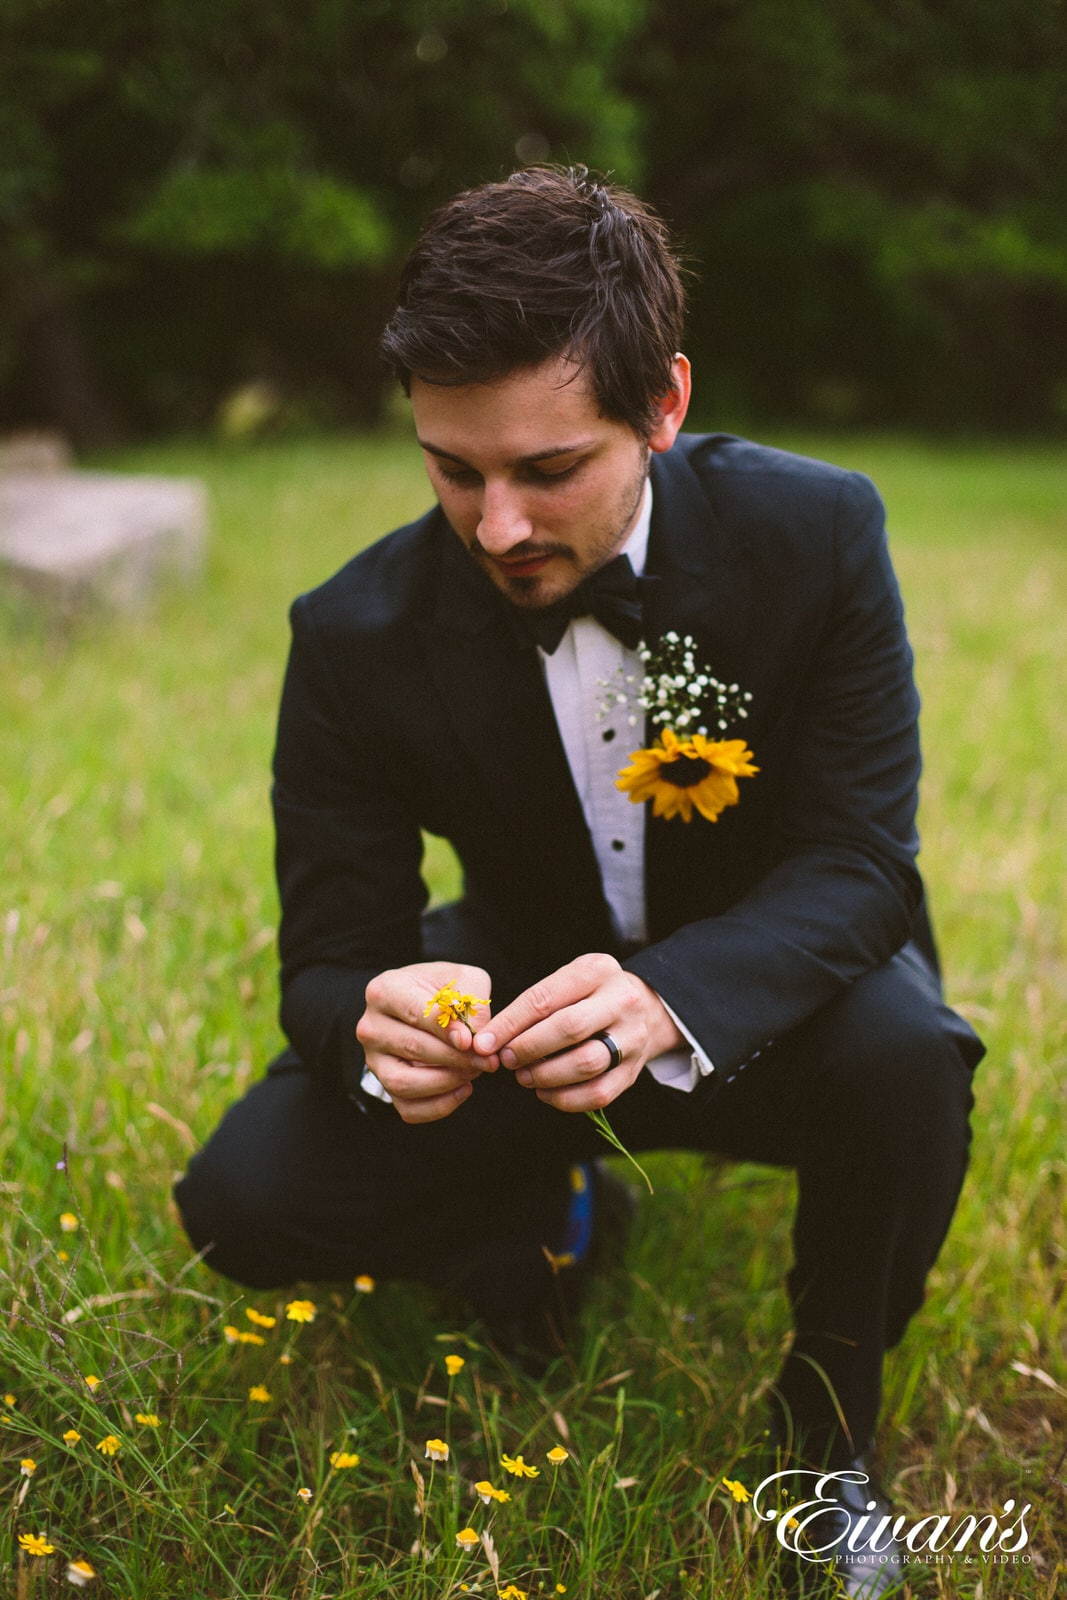 man in a black suit in a field of grass and yellow flowers